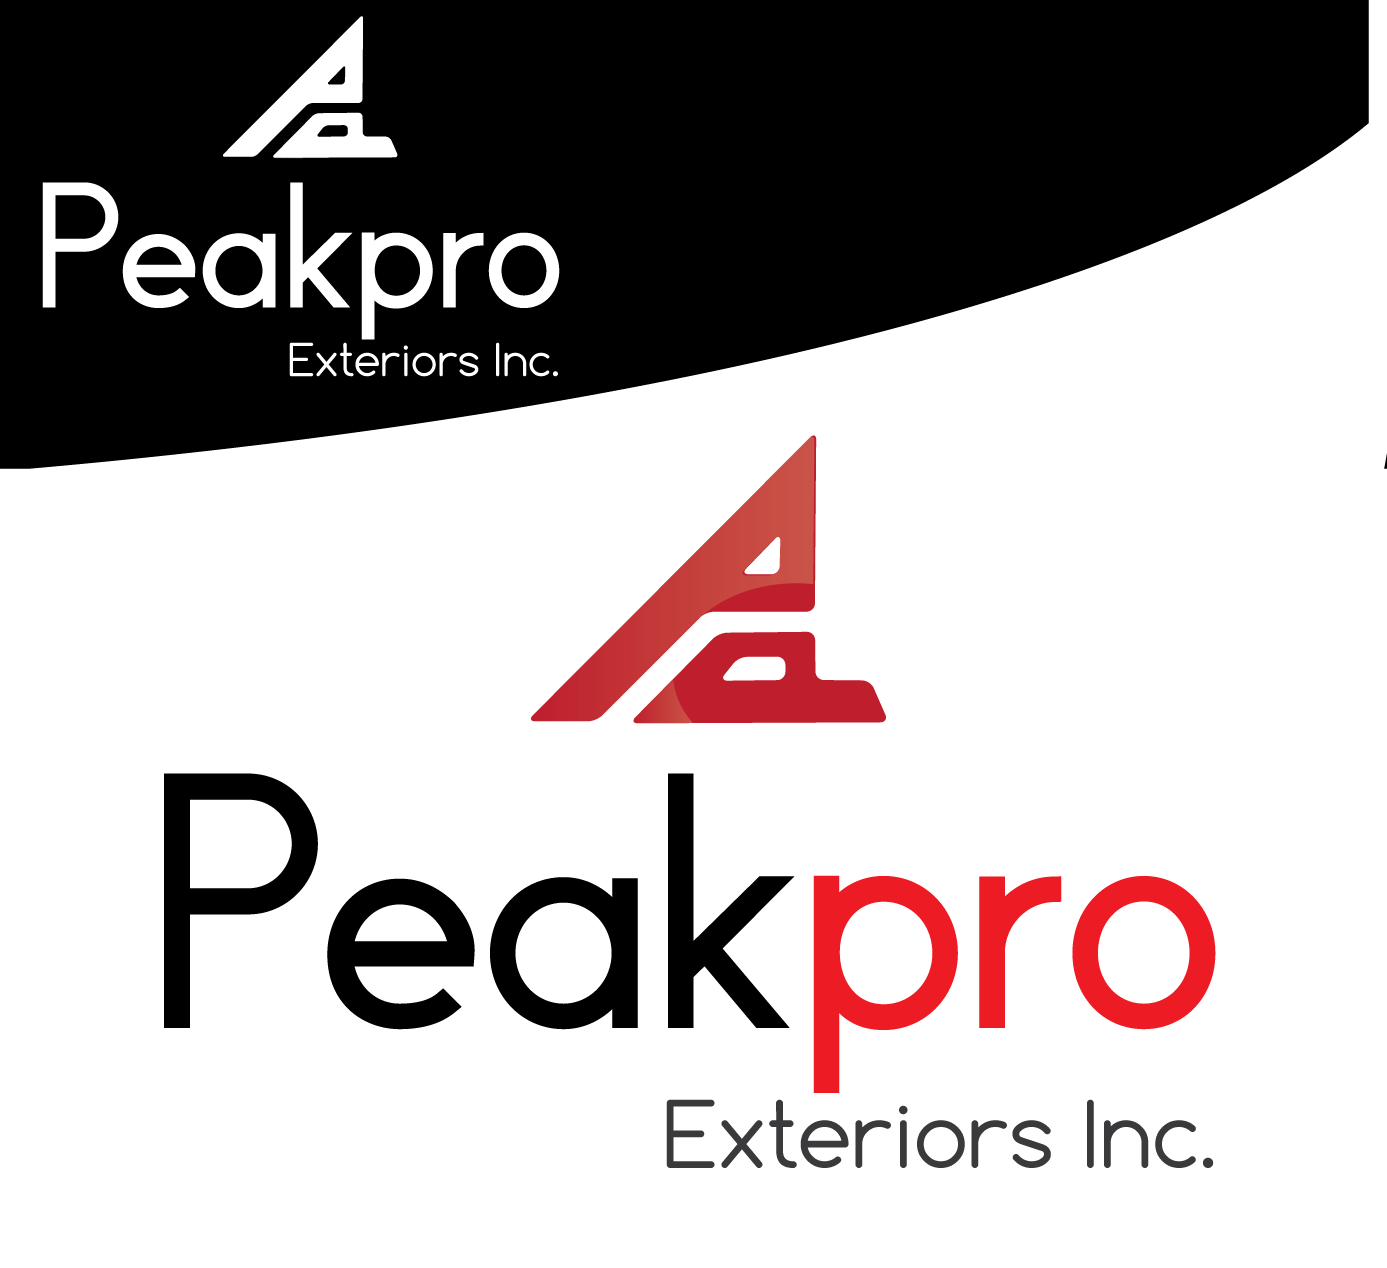 Logo Design by 354studio - Entry No. 68 in the Logo Design Contest Captivating Logo Design for Peakpro Exteriors Inc..